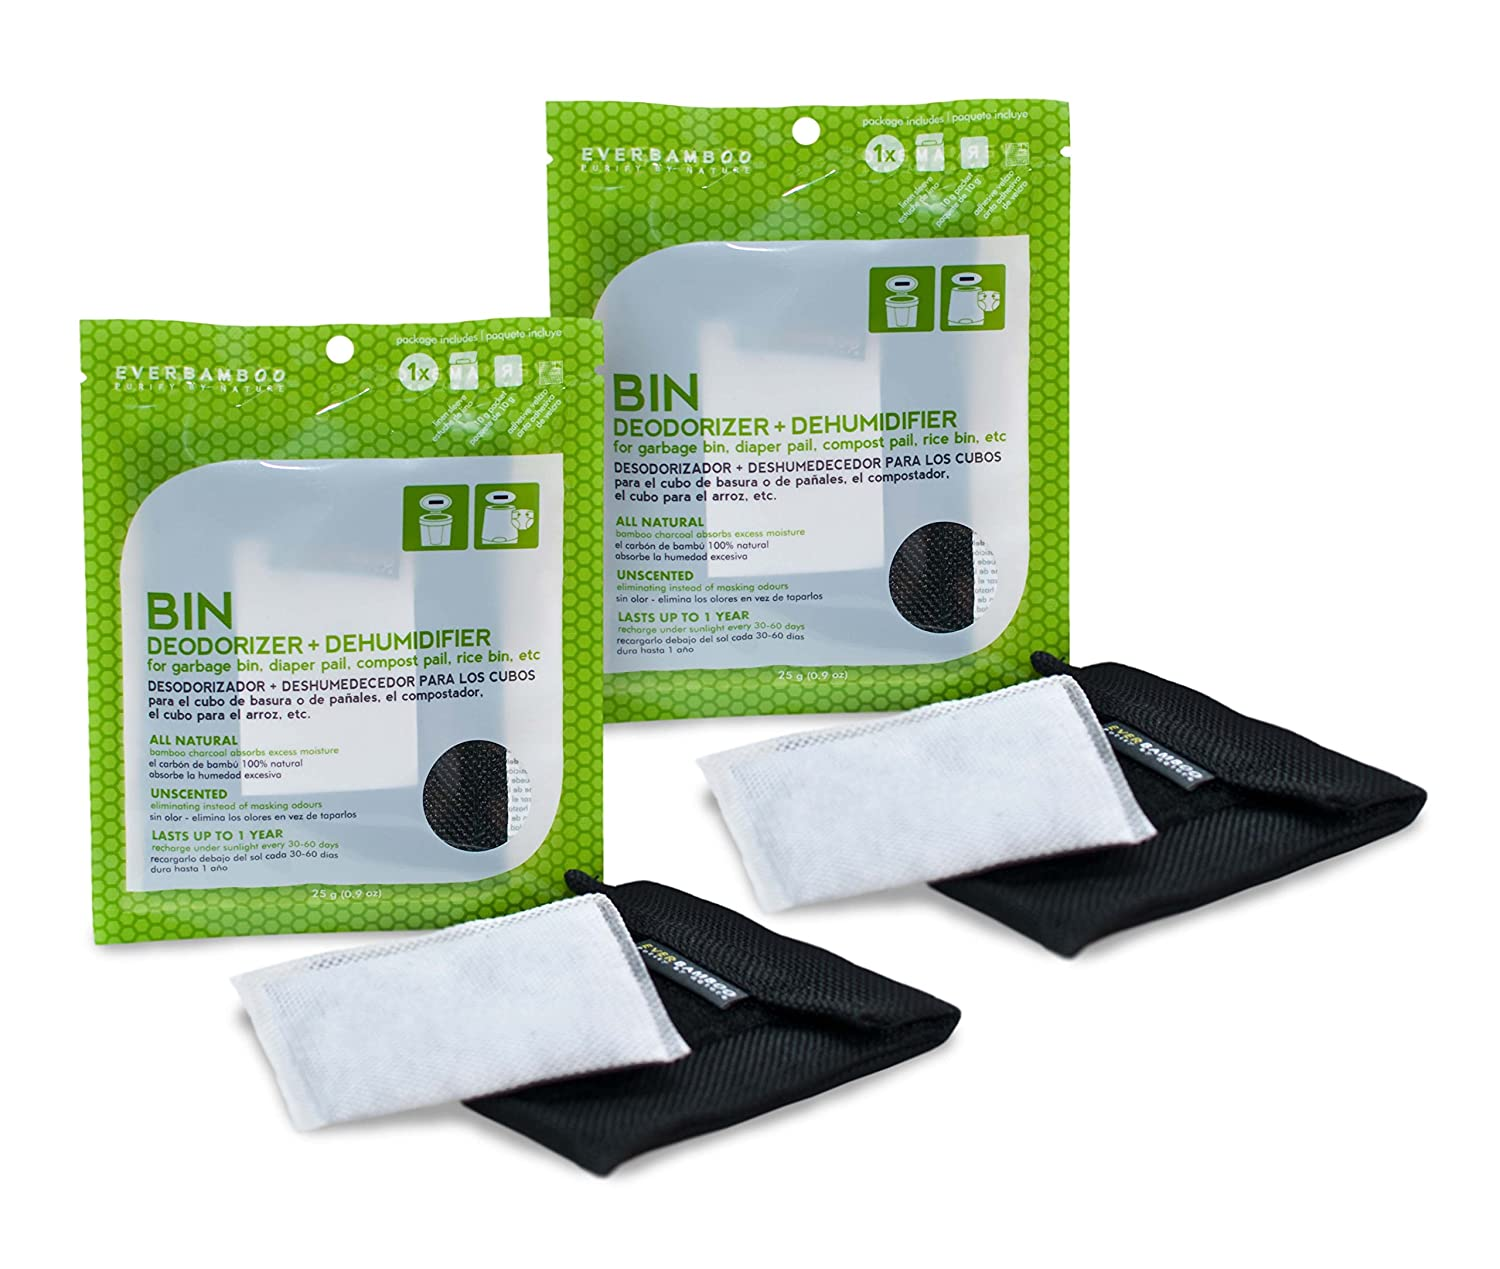 Ever Bamboo Bin Deodorizer Bag Set w/Natural Bamboo Charcoal (25 g)